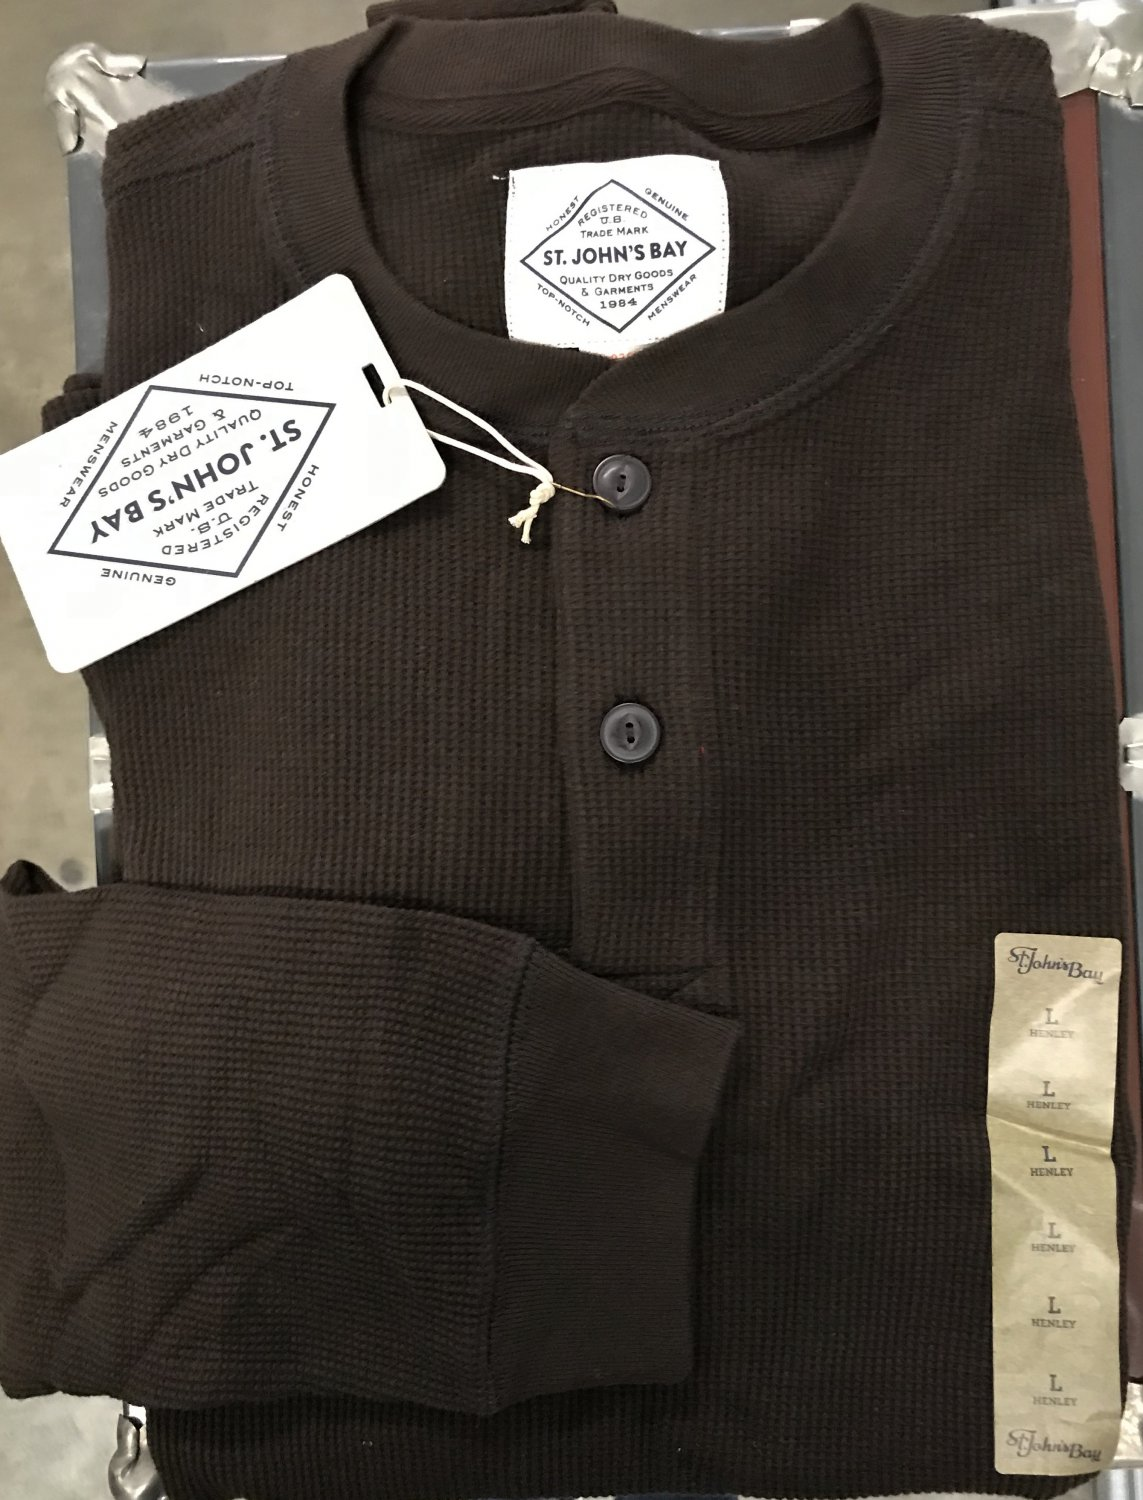 Men's HENLEY SHIRT Waffle Weave Top LARGE Chocolate Brown Cotton NWT